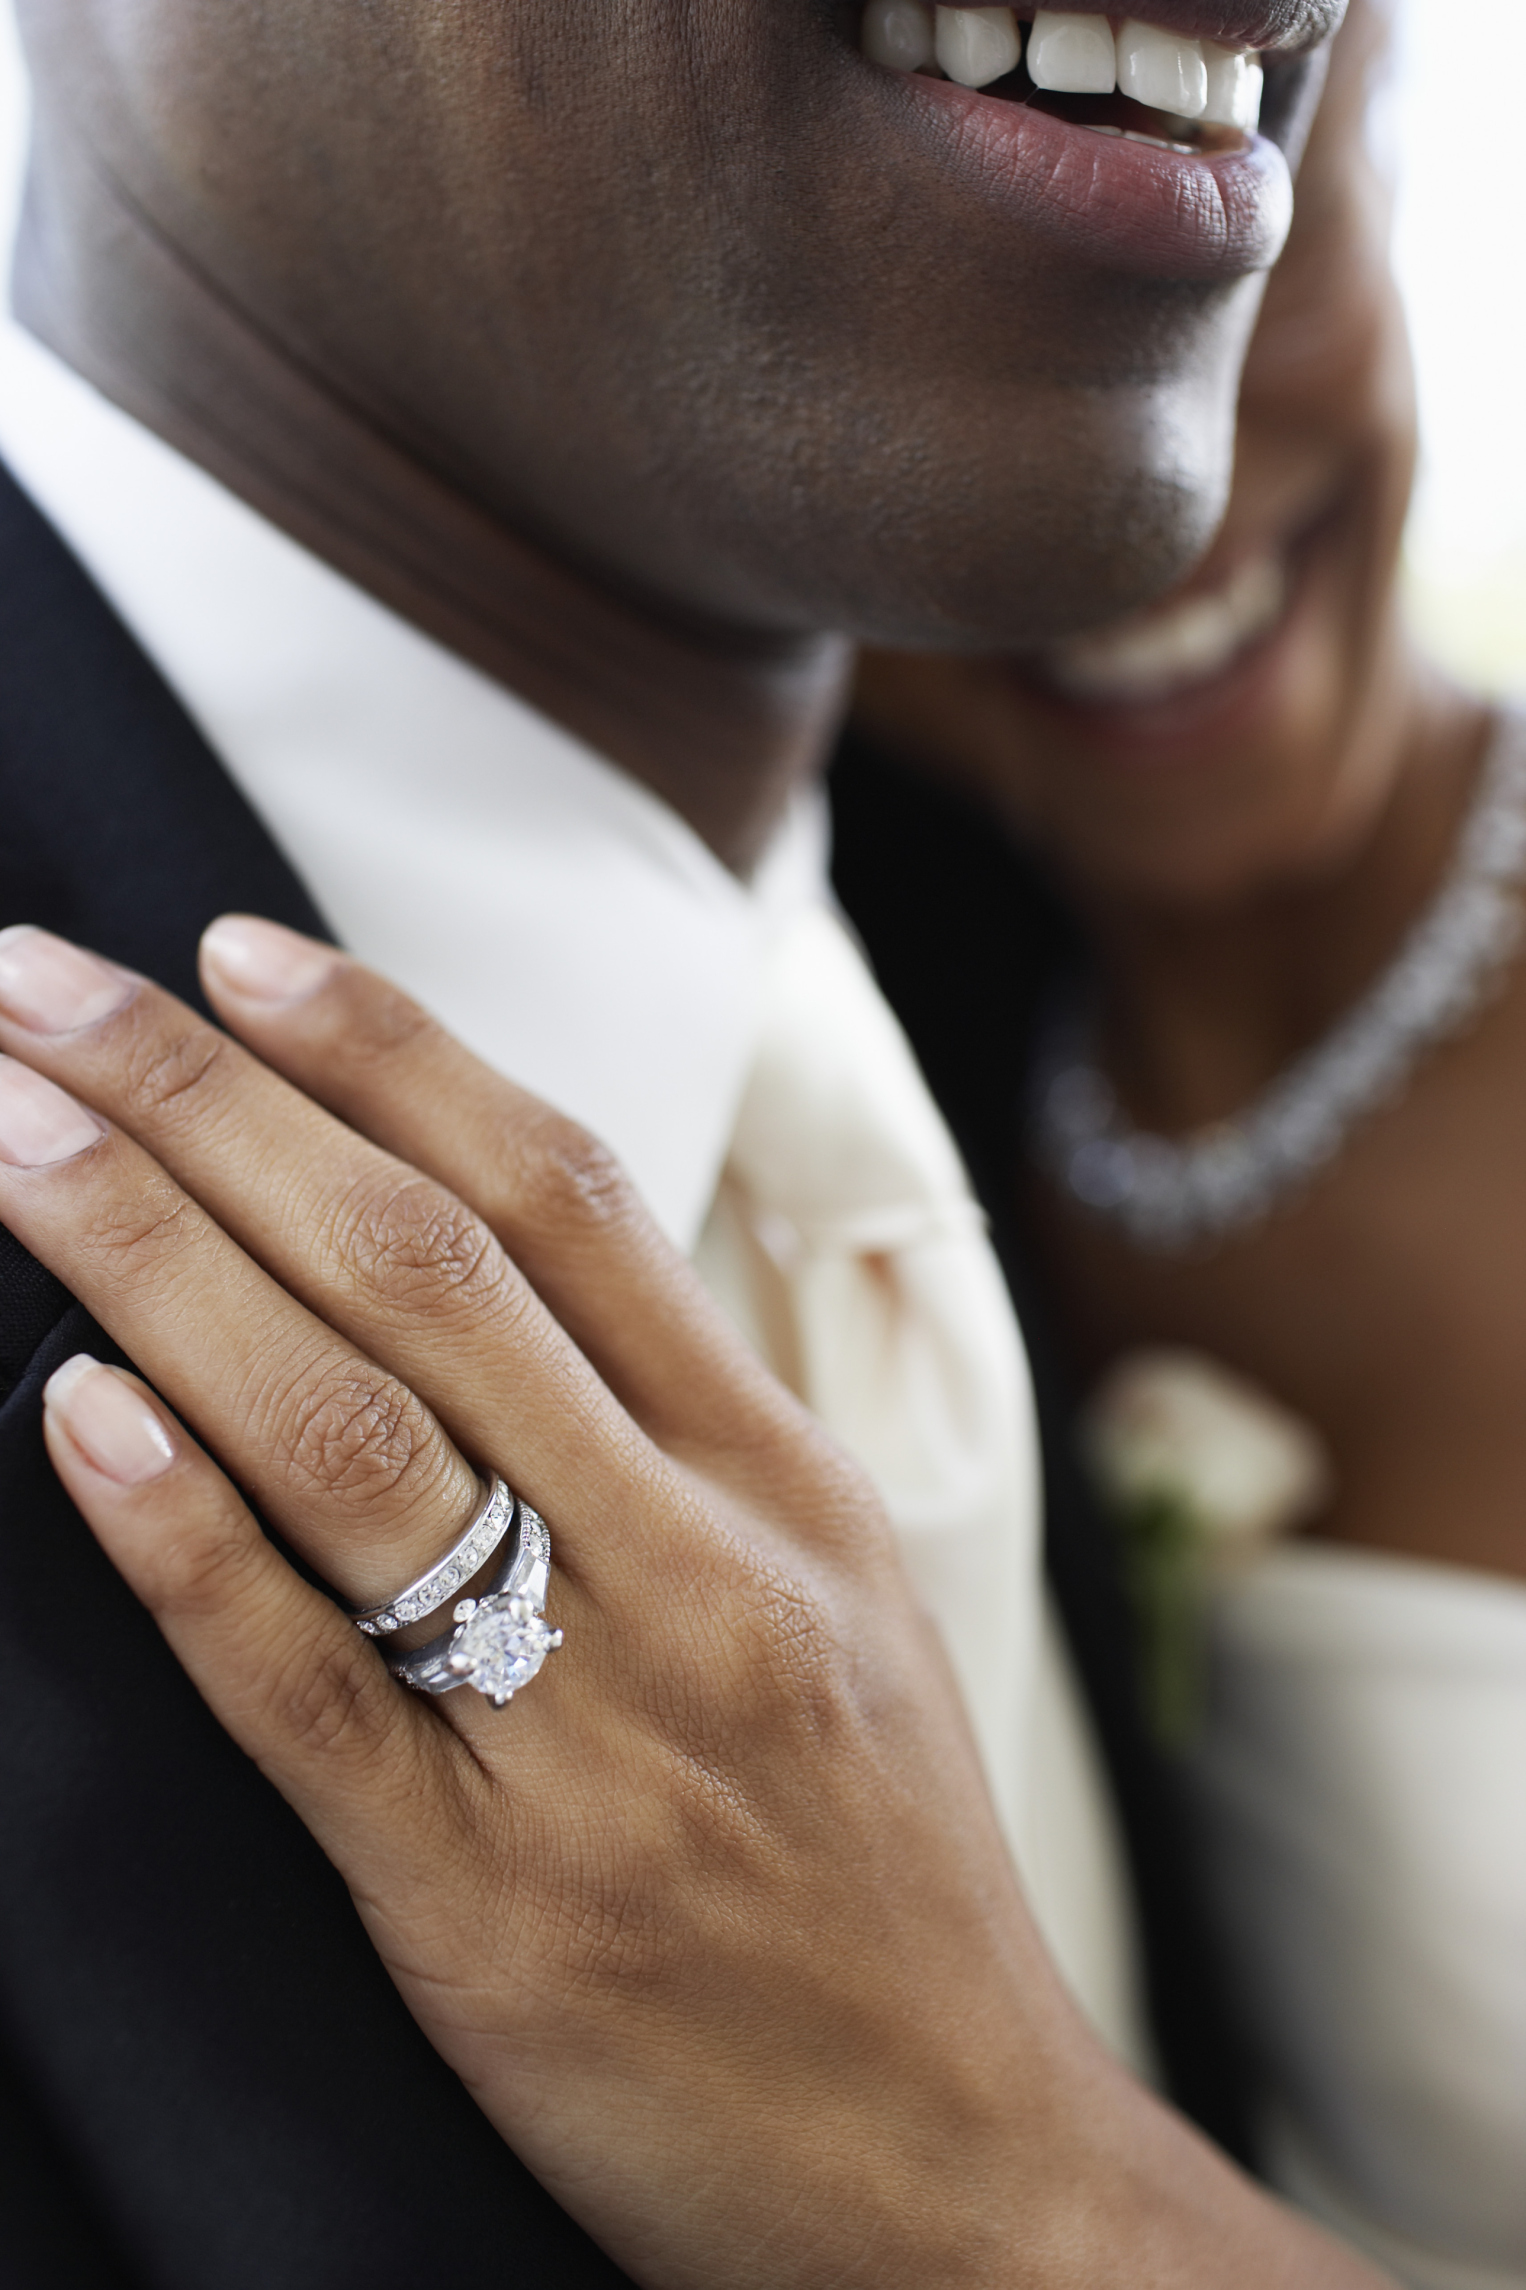 Bride Wearing Engagement and Wedding Rings